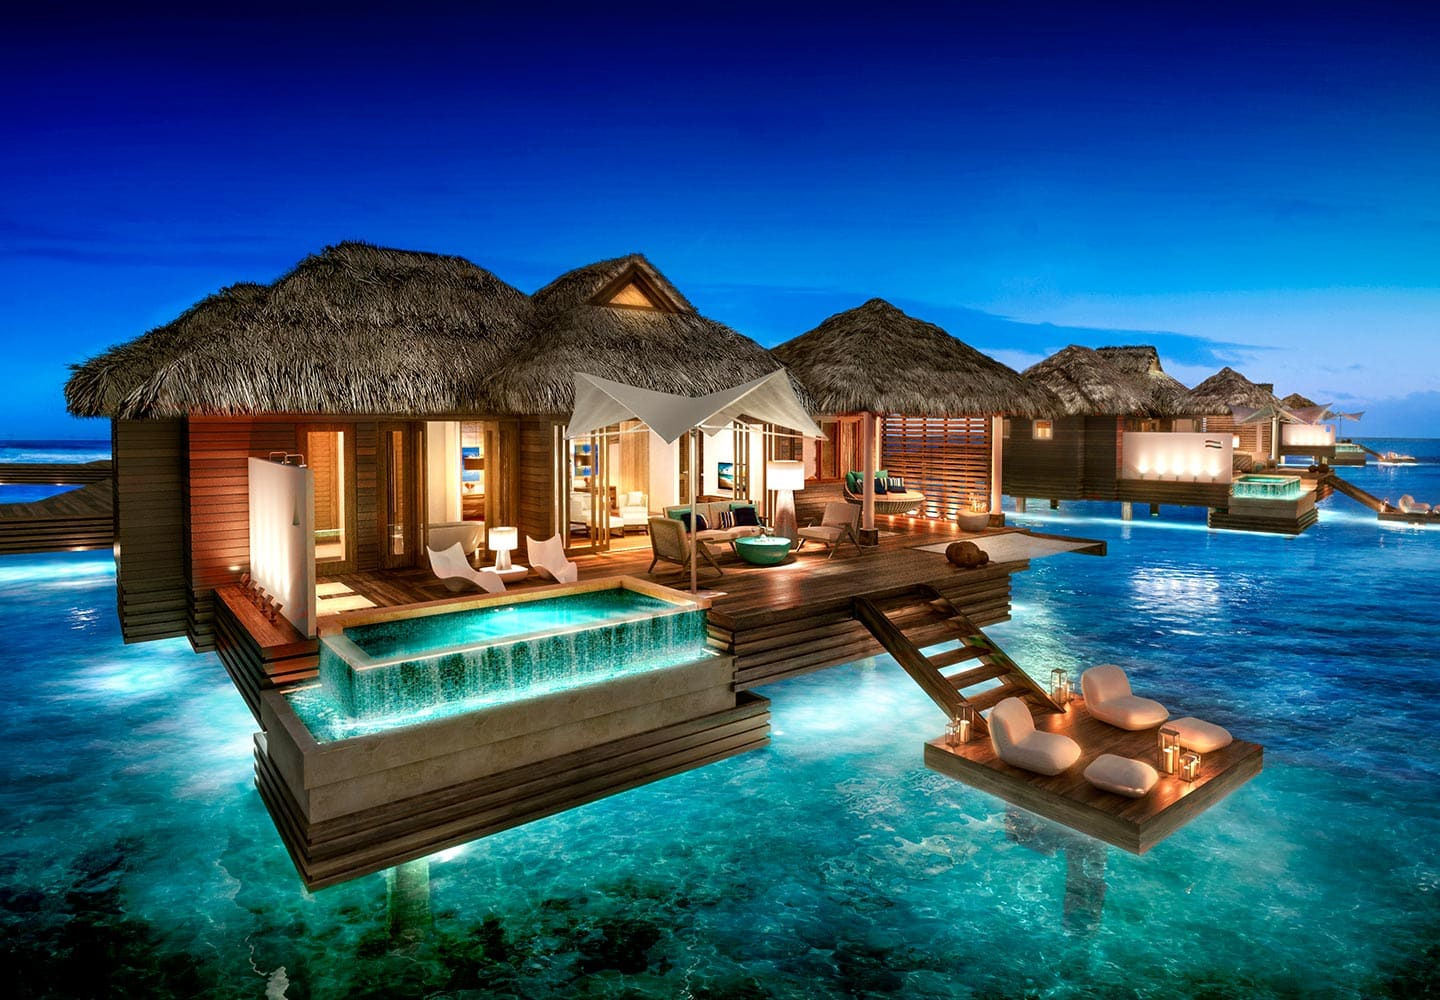 over-the-water bungalows, surrounded by blue water at the Sandals Royal Caribbean resort and priviate island in Jamaica, perfect for all inclusive vacations adults only, planned by Southern Travel Agency Augusta, GA